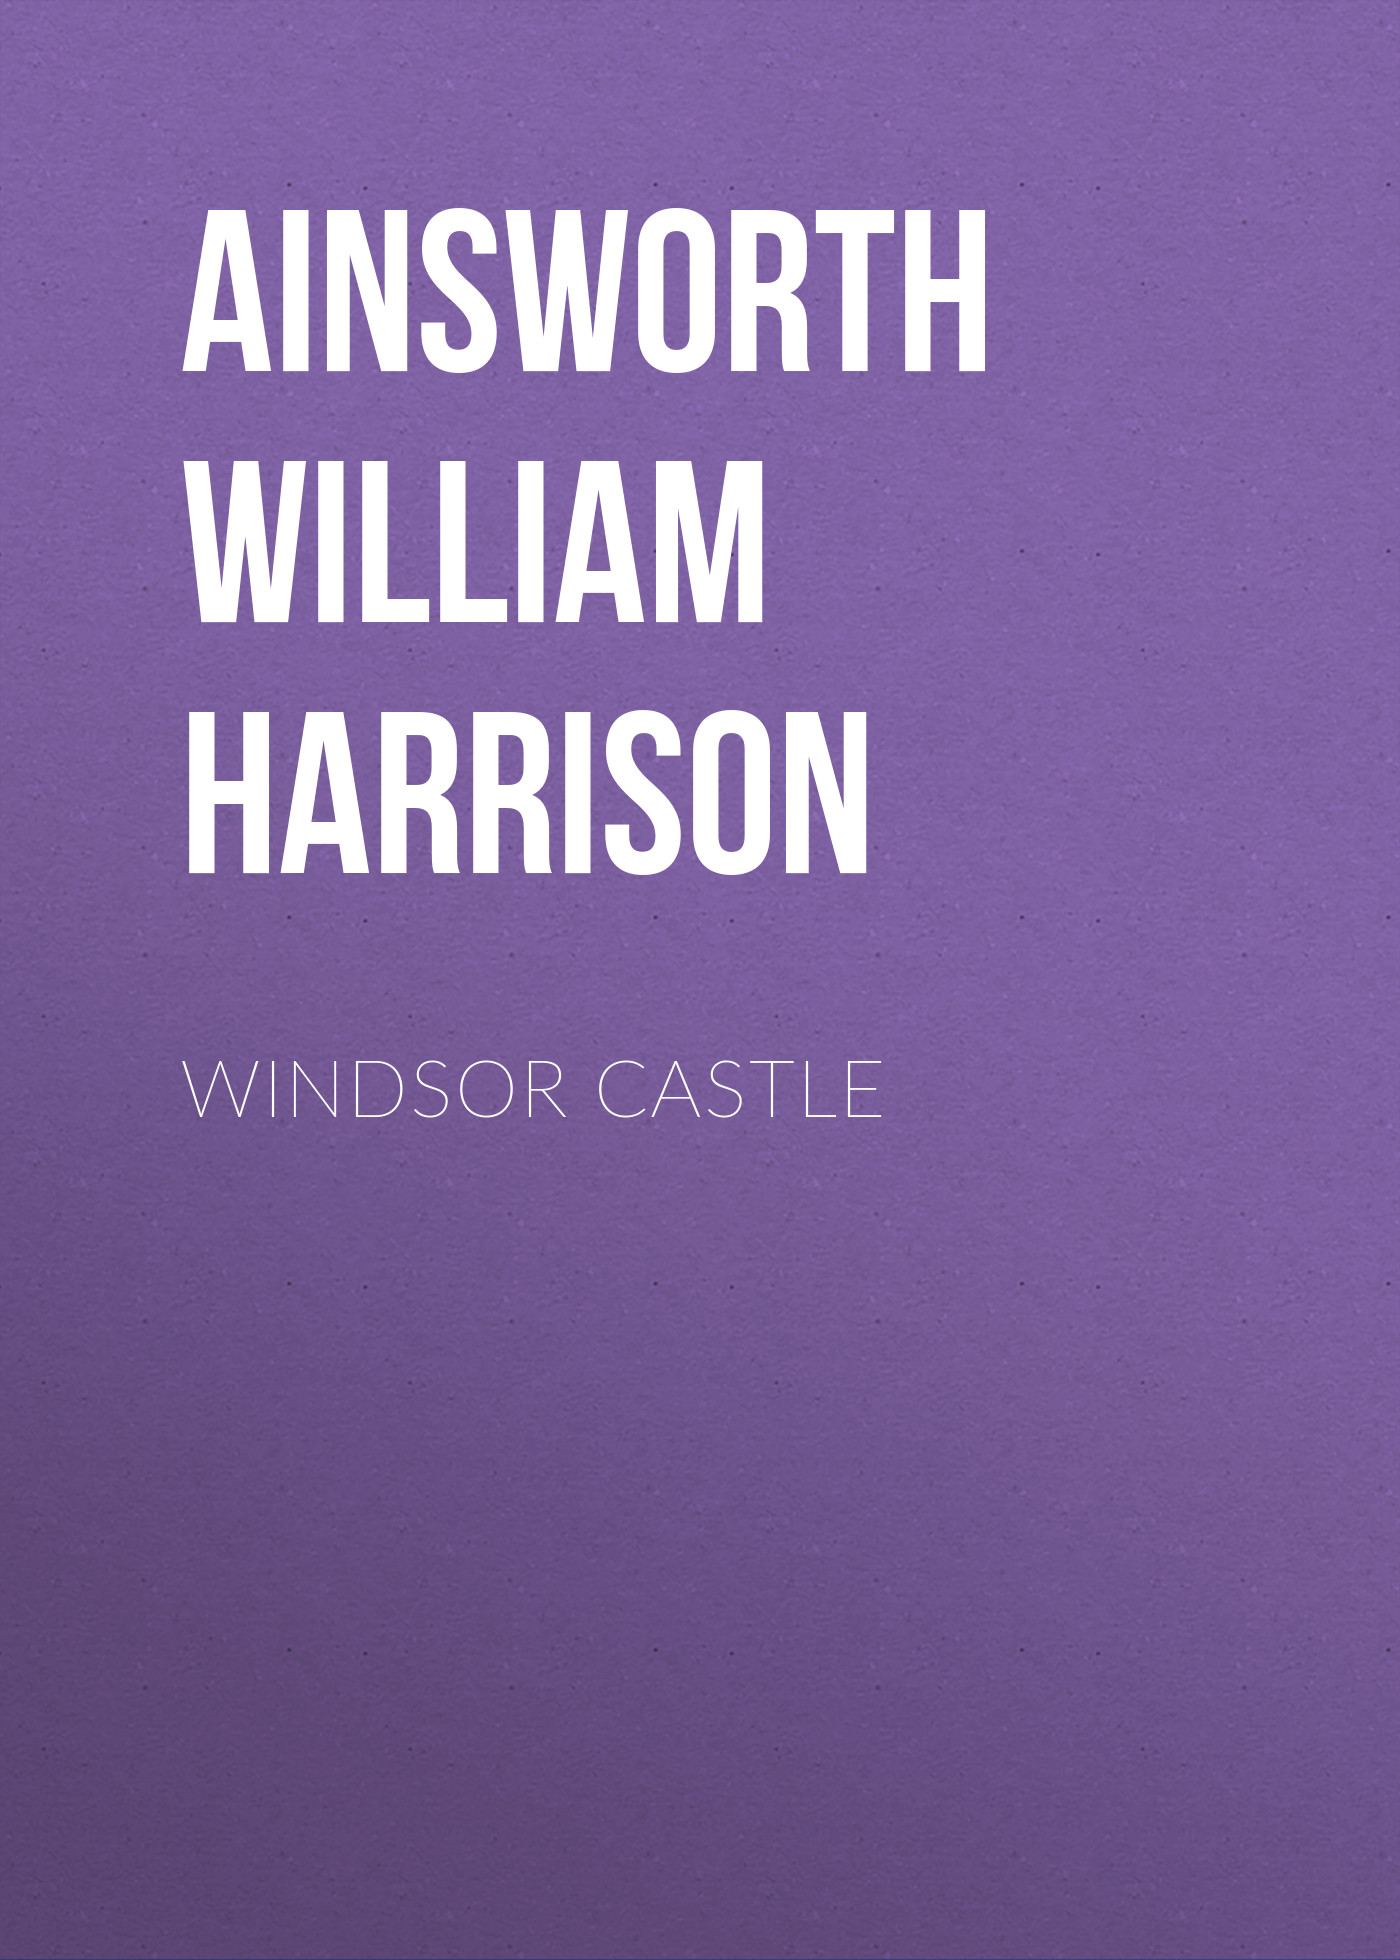 Ainsworth William Harrison Windsor Castle ainsworth william harrison the star chamber an historical romance volume 1